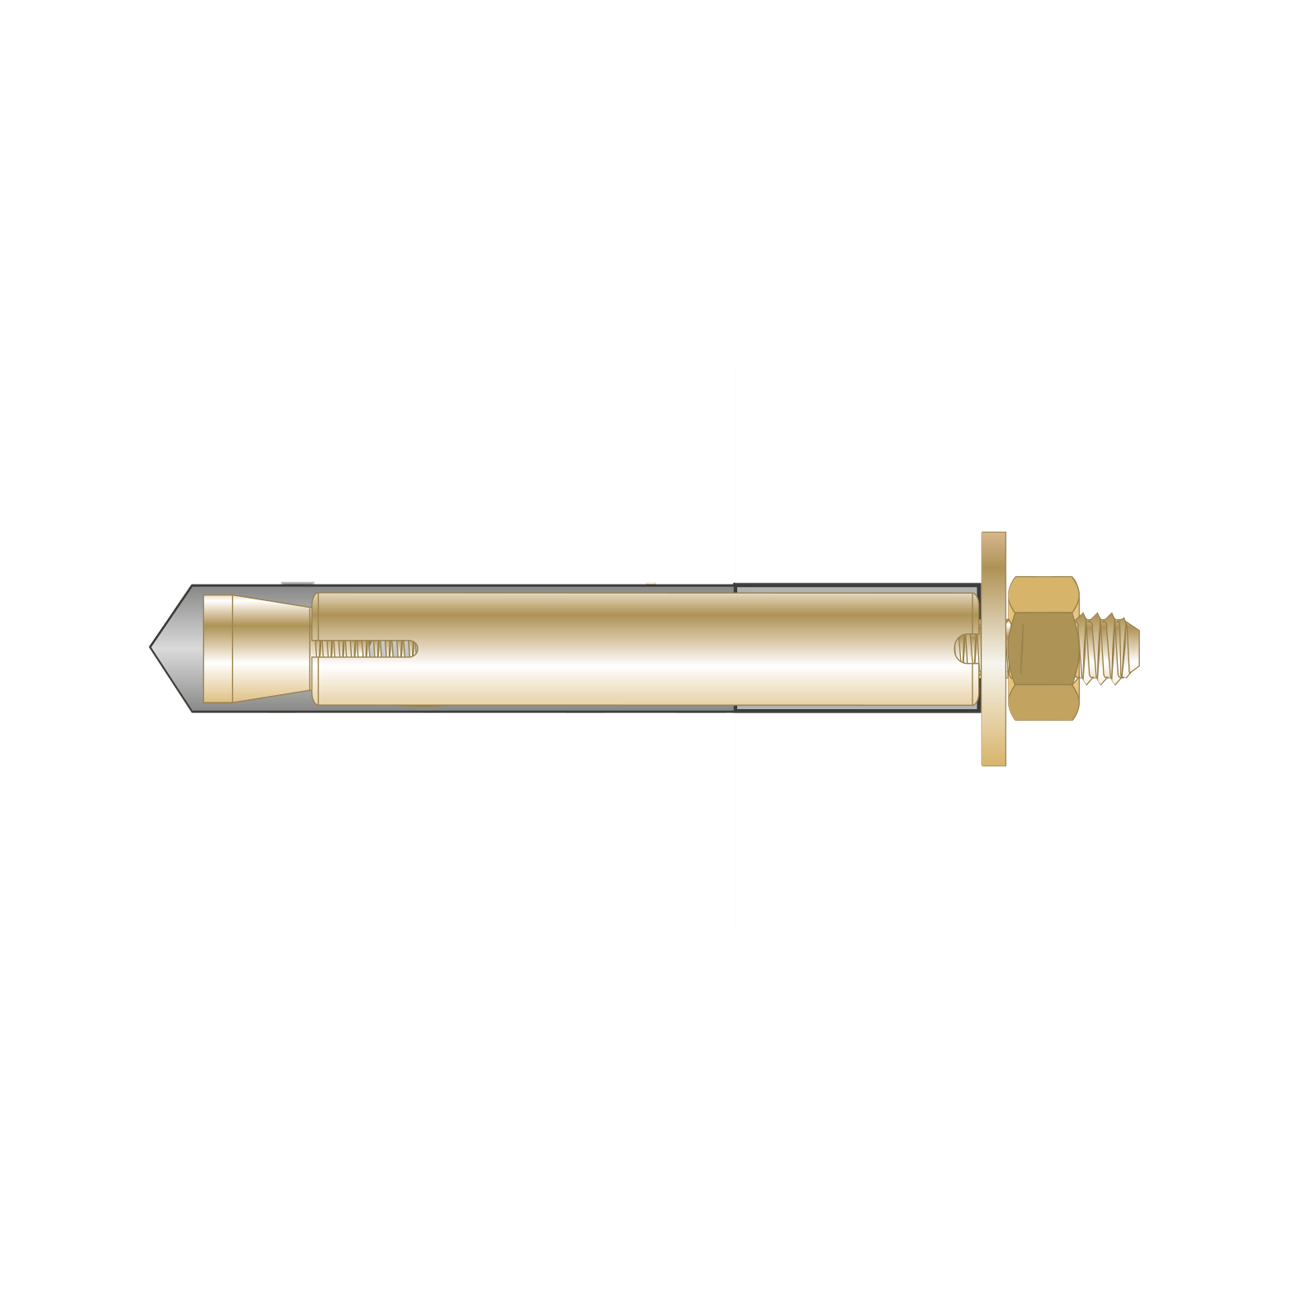 Conexpand Strapung Tip1-m 6×120